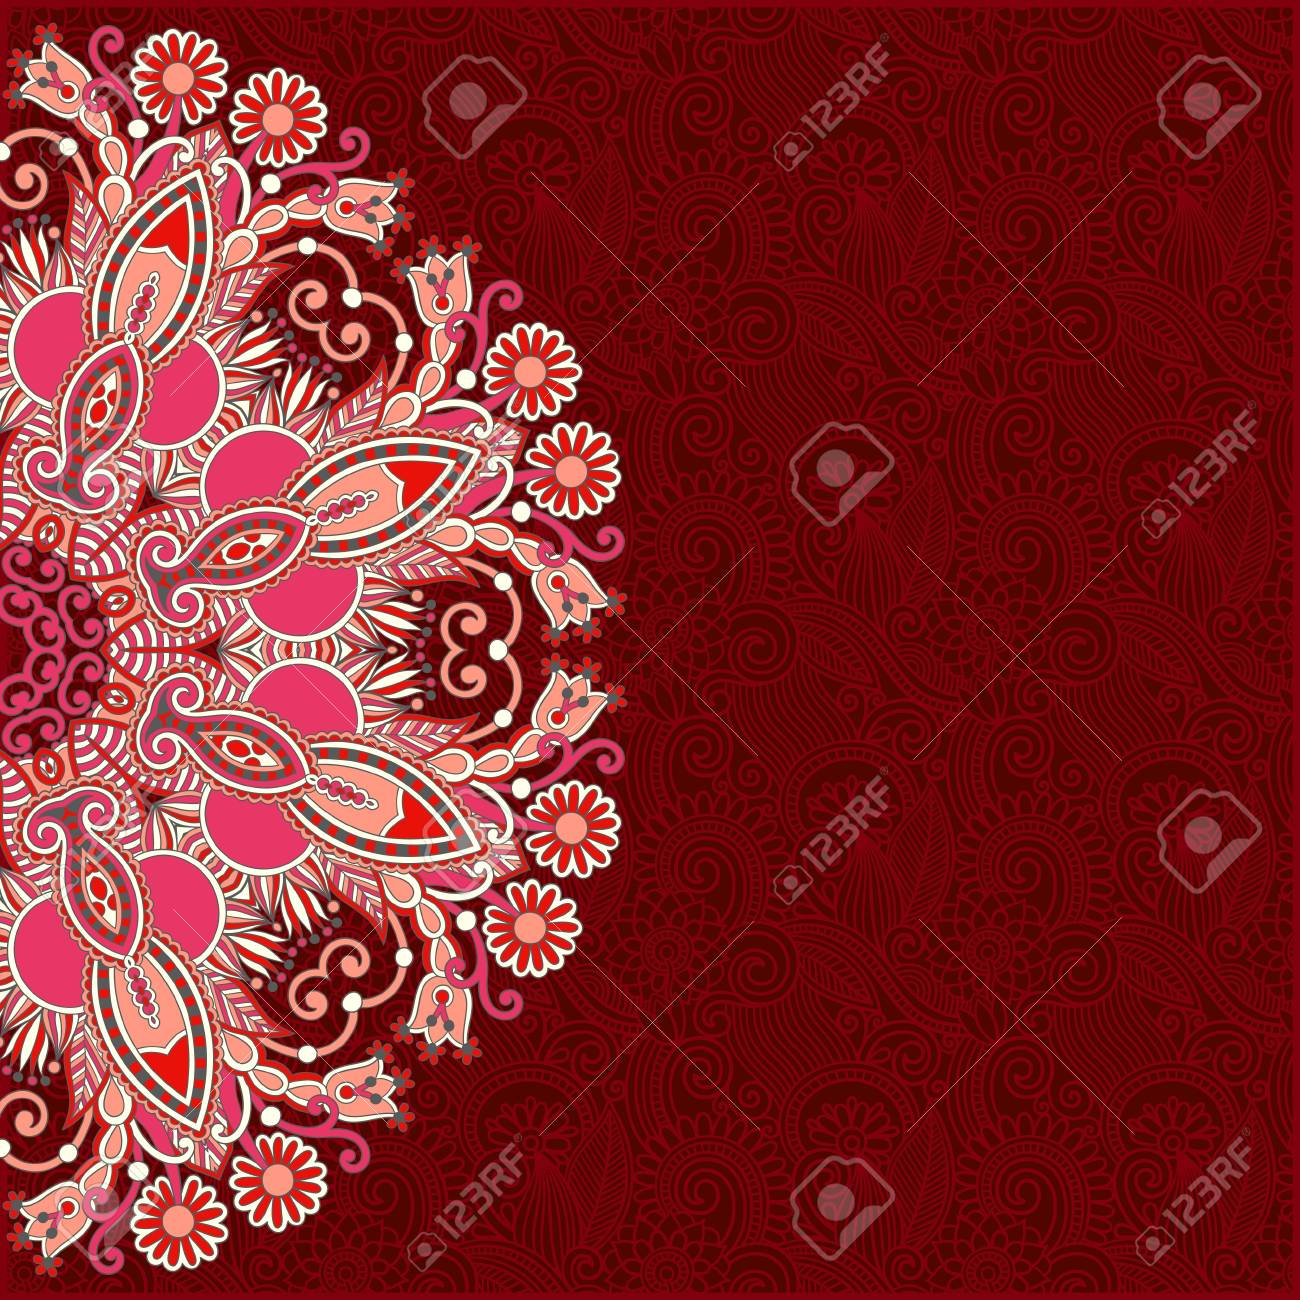 ornamental circle template with floral background Stock Vector - 17416084